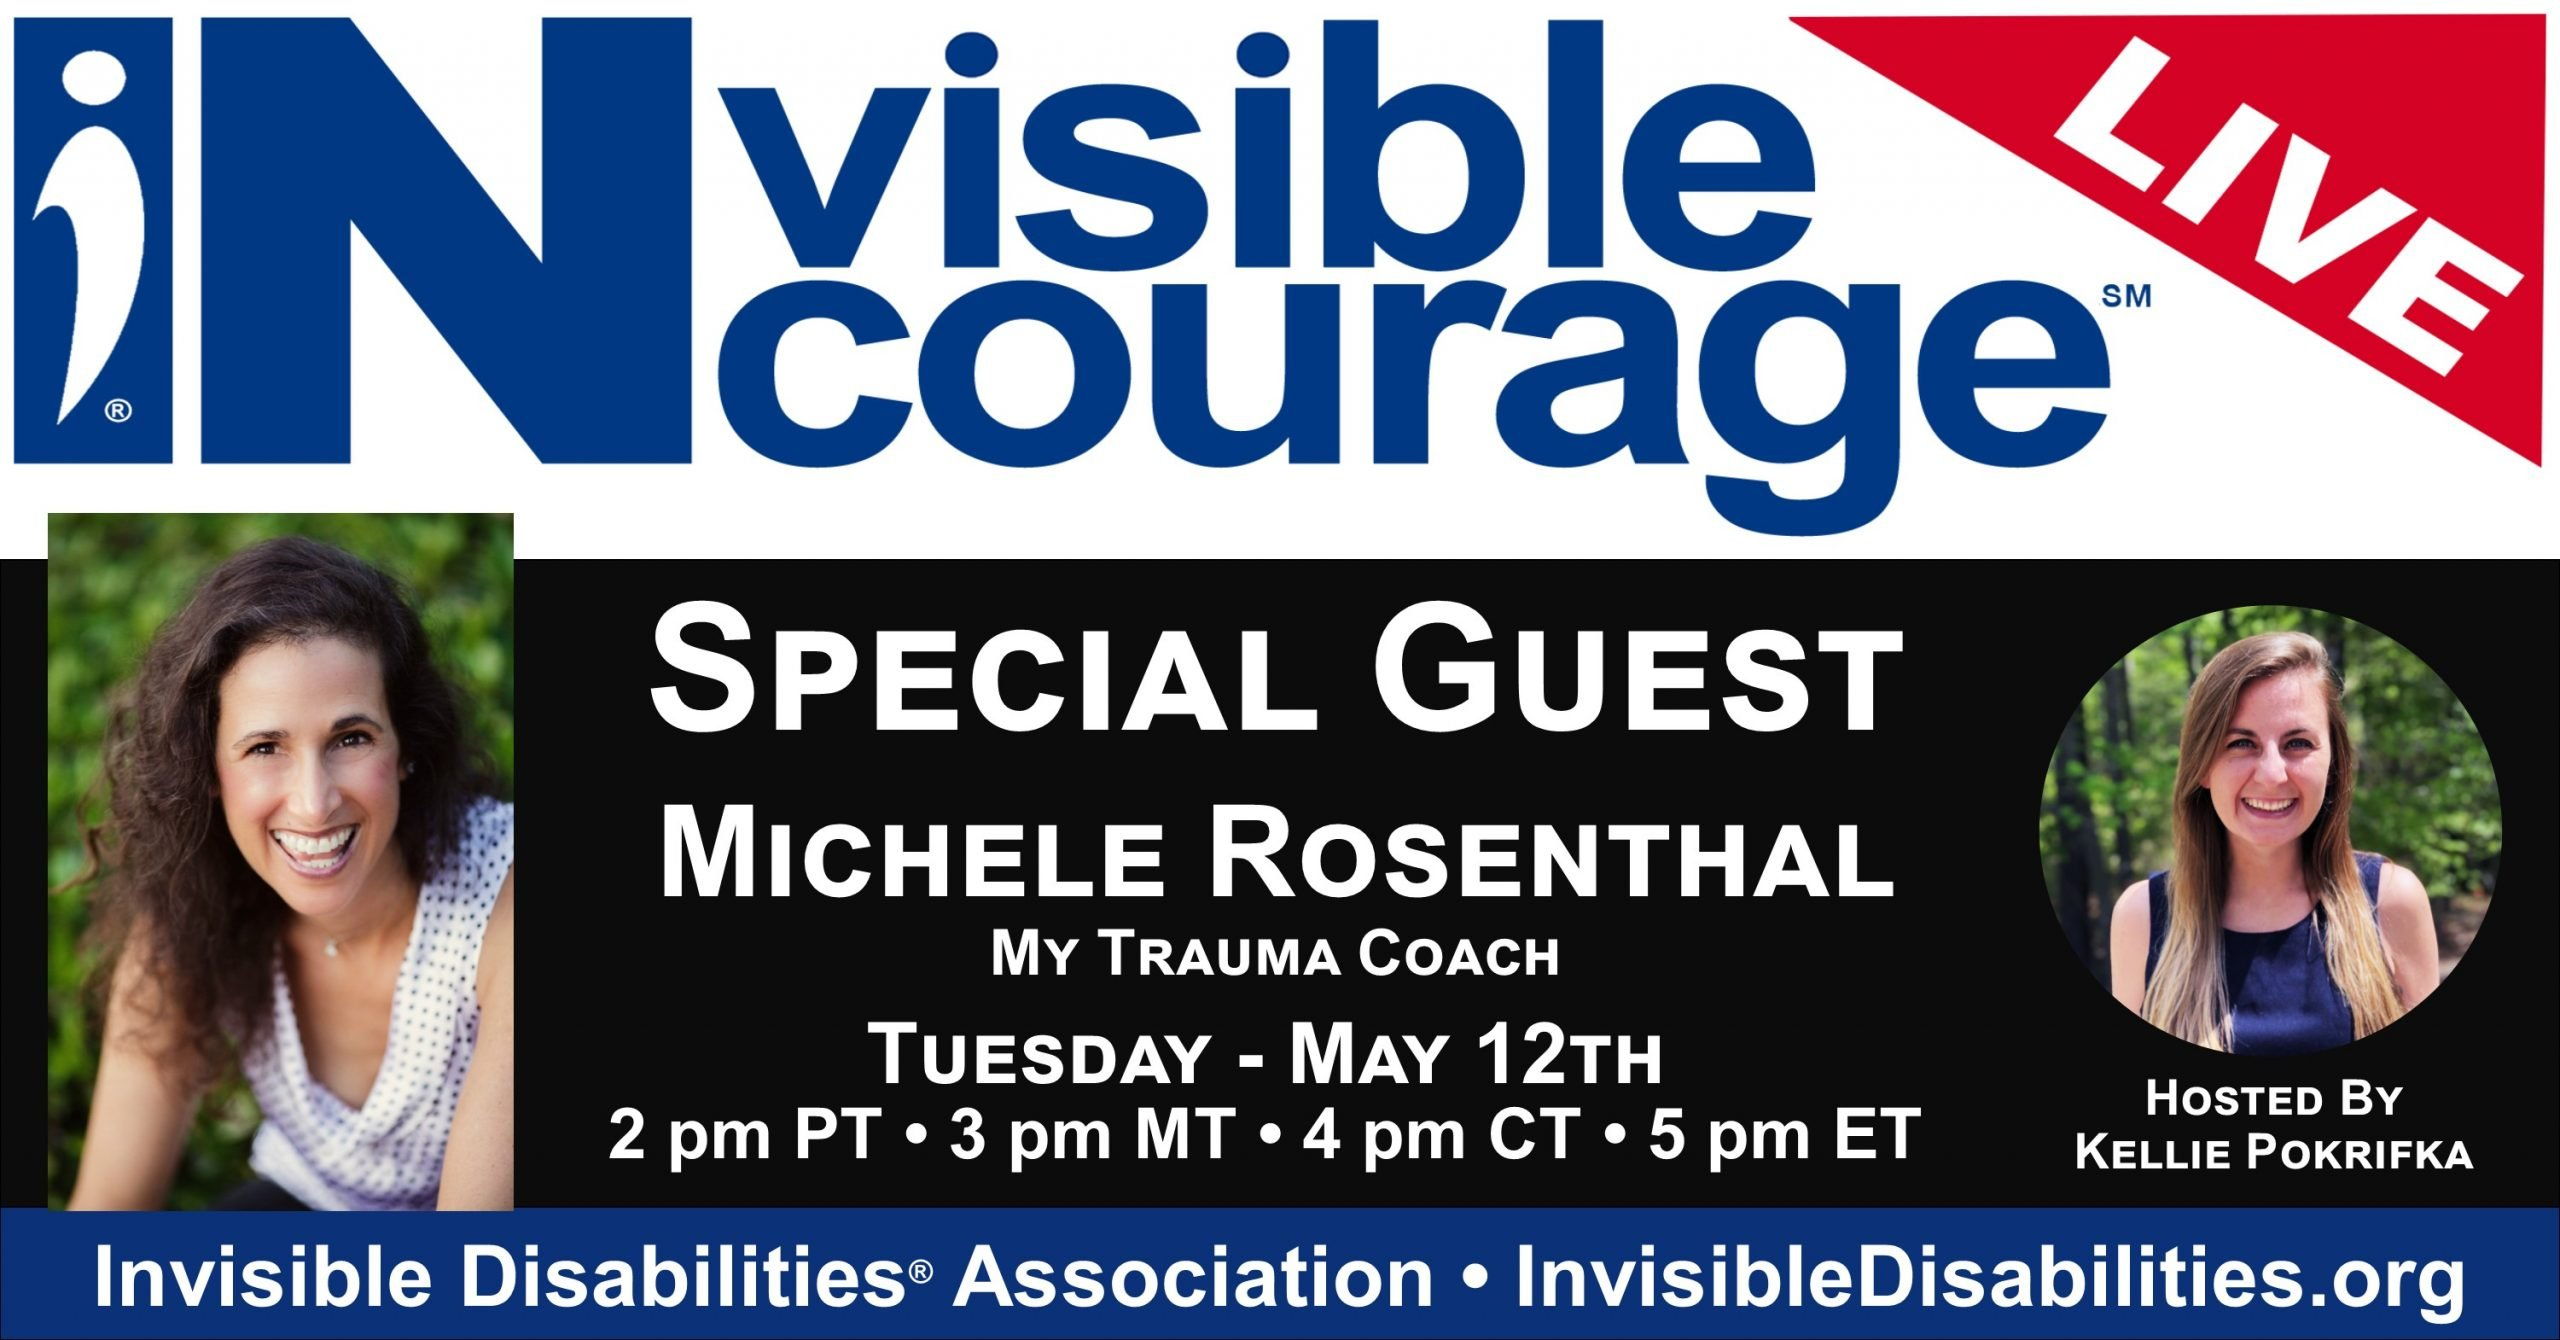 InVisible Encourage Live with Michele Rosenthal , My Trauma Coach - Invisible Disabilities Association